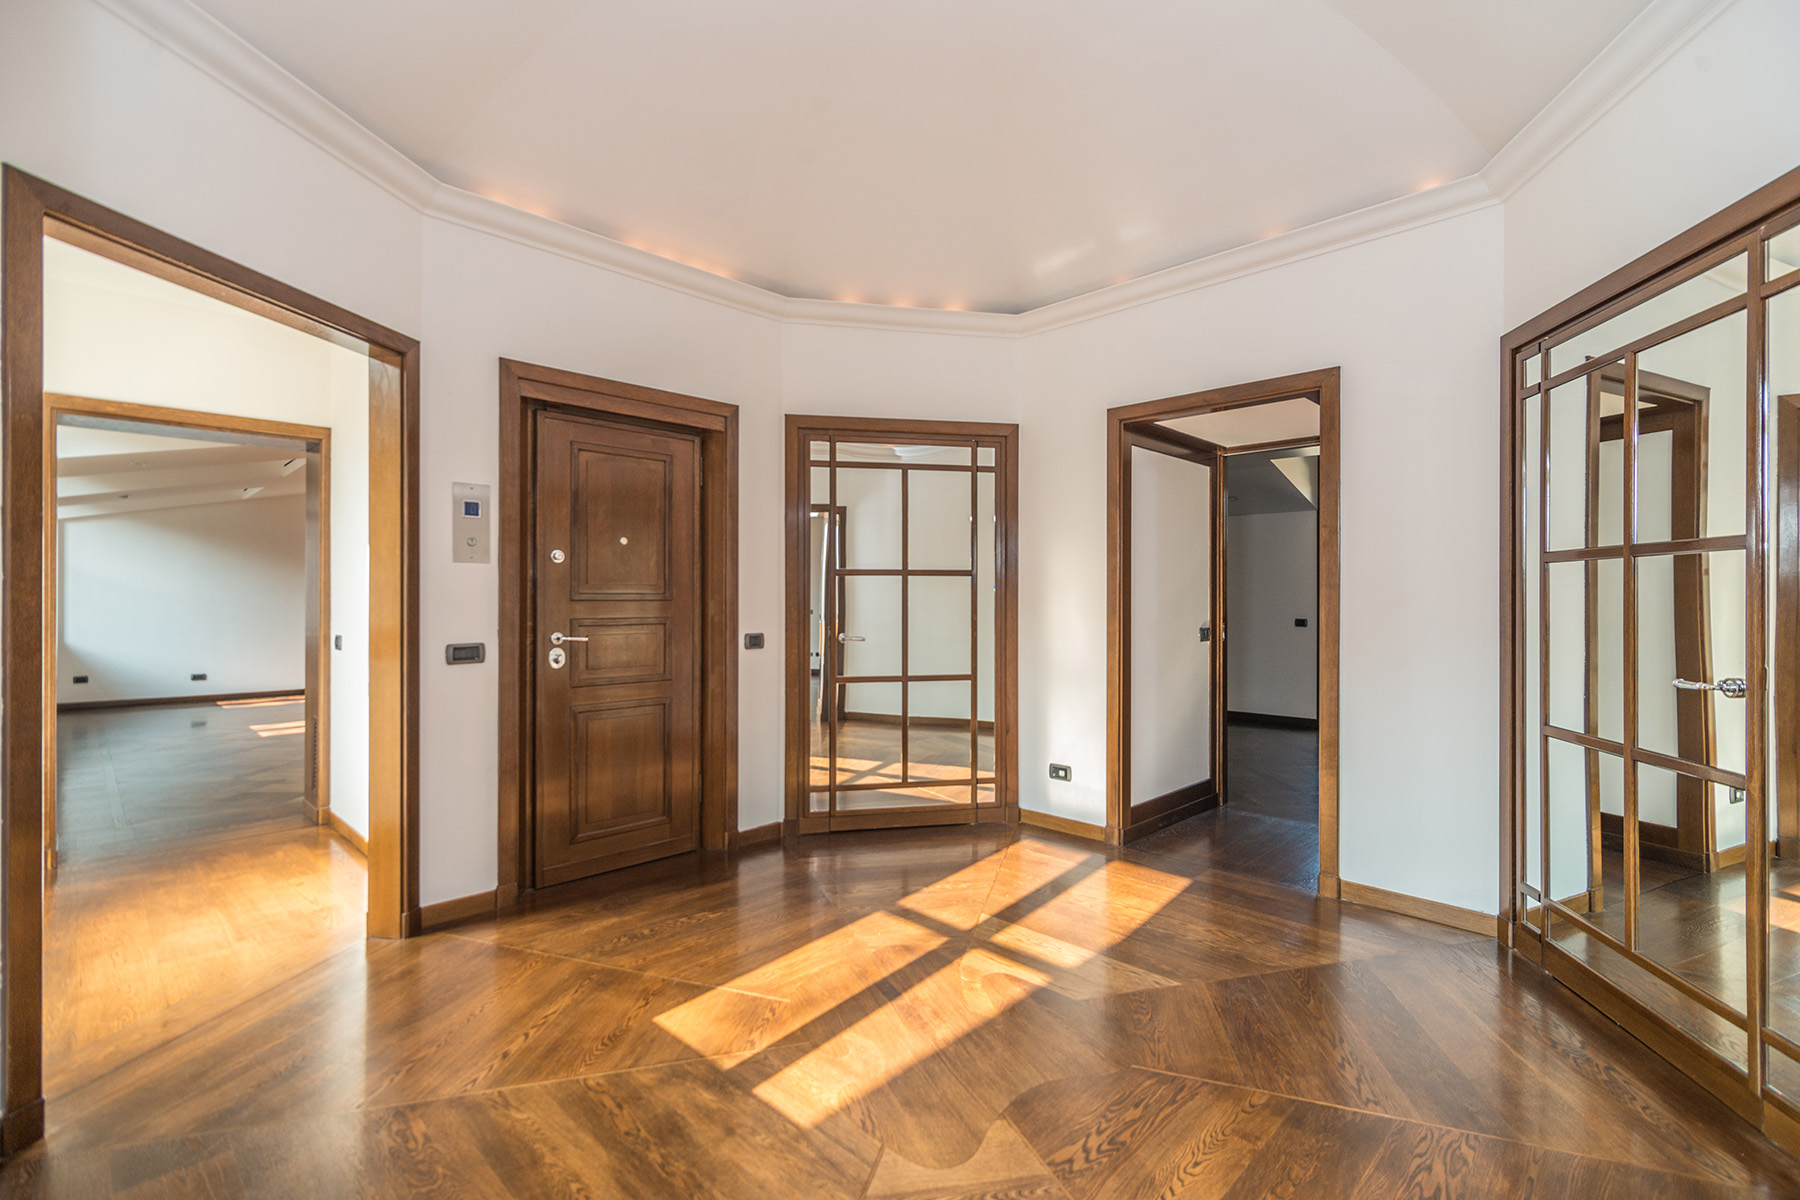 Apartment for Rent at Exclusive penthouse in the heart of Milan via della Spiga Milano, 20121 Italy